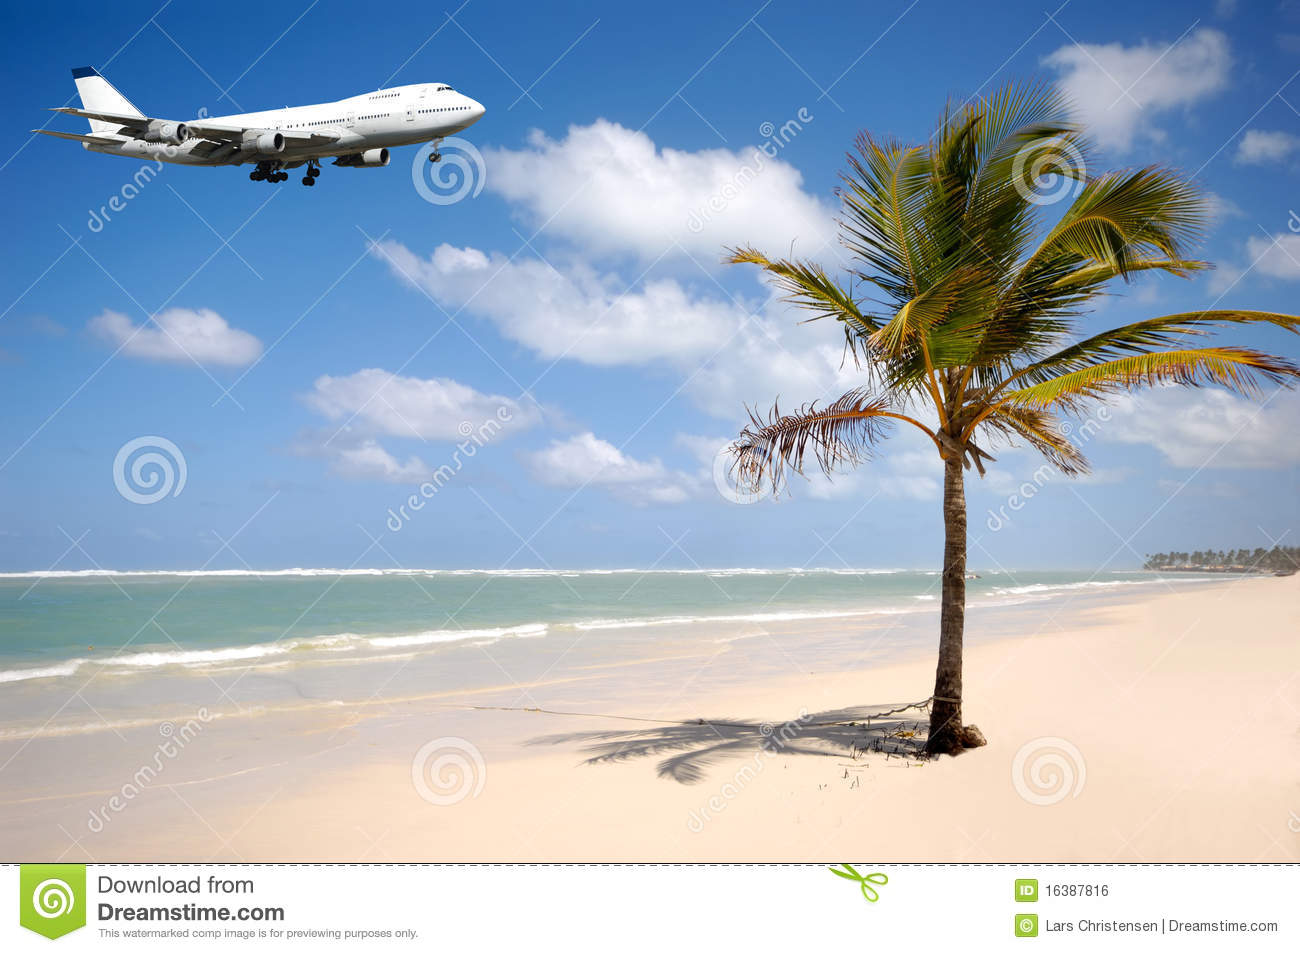 Island With Airplane Flying Over Beach